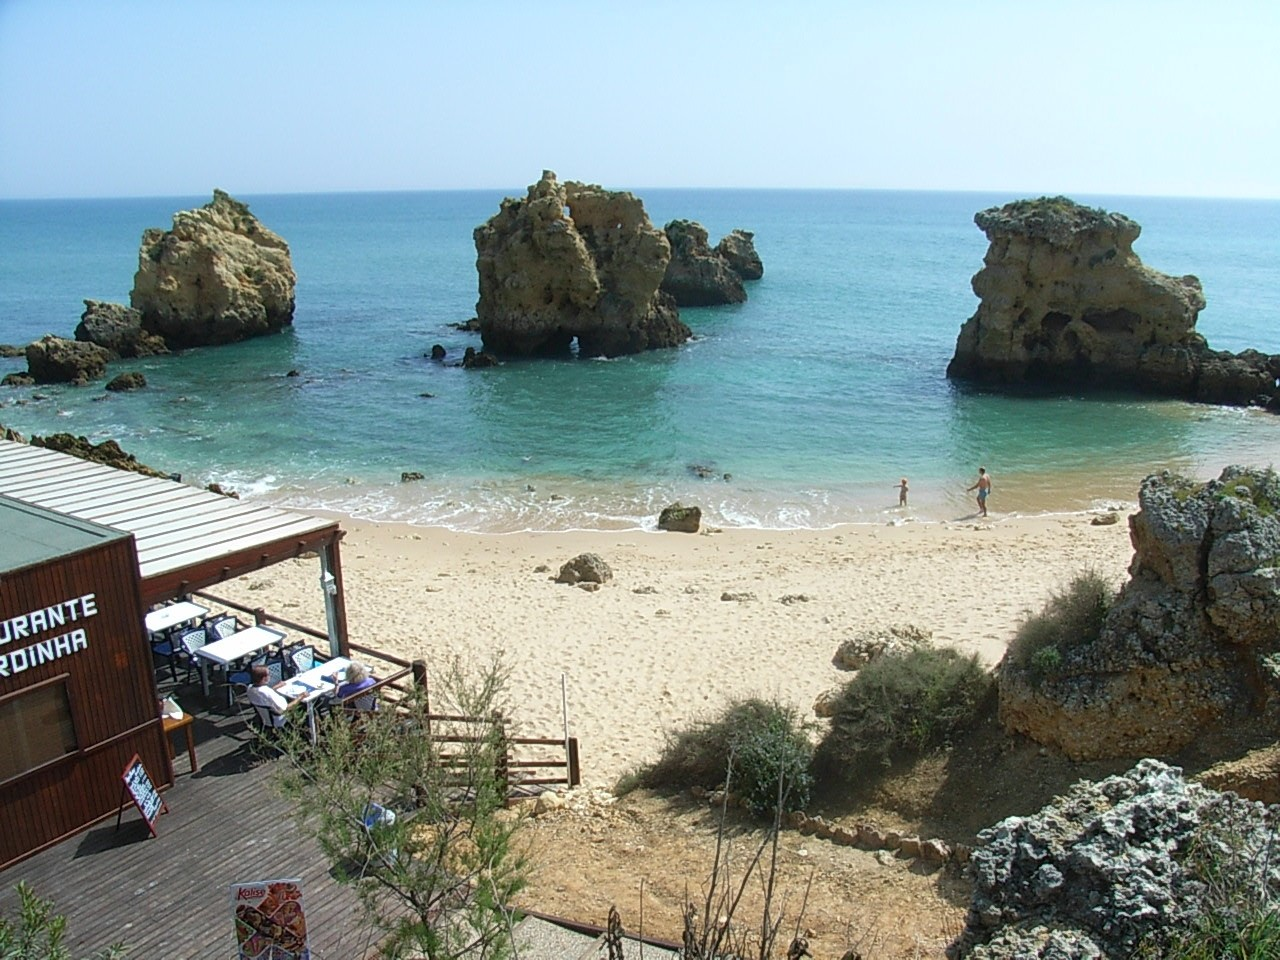 Arrifes/Albufeira, favourite hideaway little beach